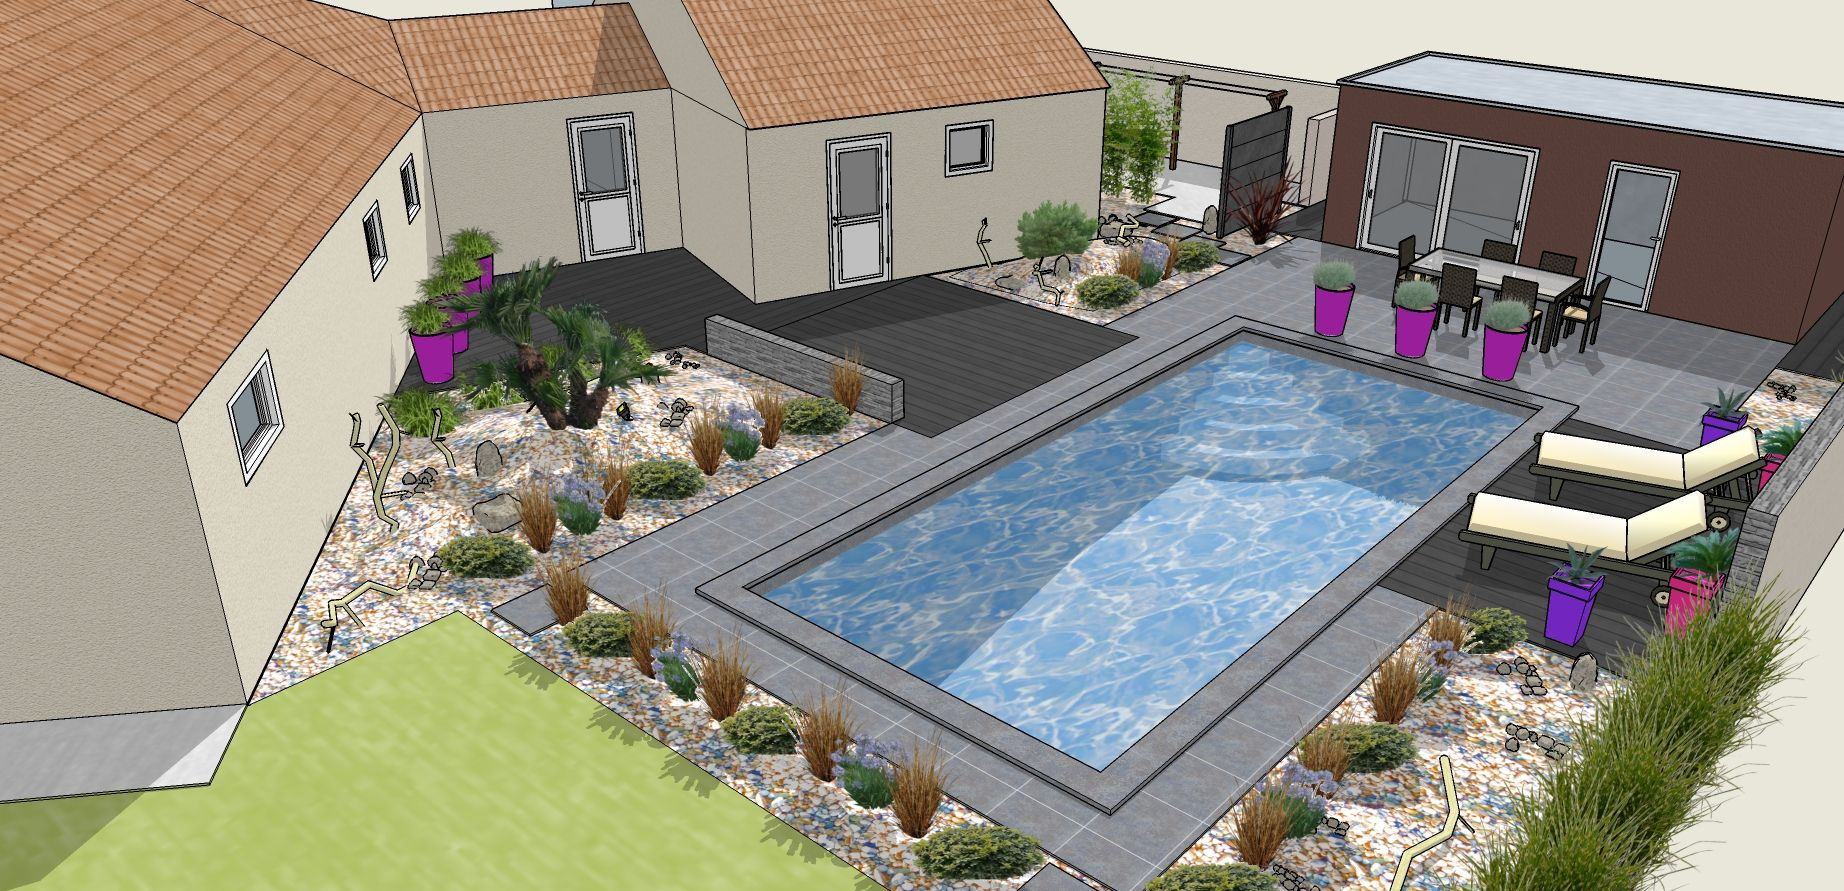 Am nagement paysager piscine creus e contemporain for Amenagement exterieur 3d